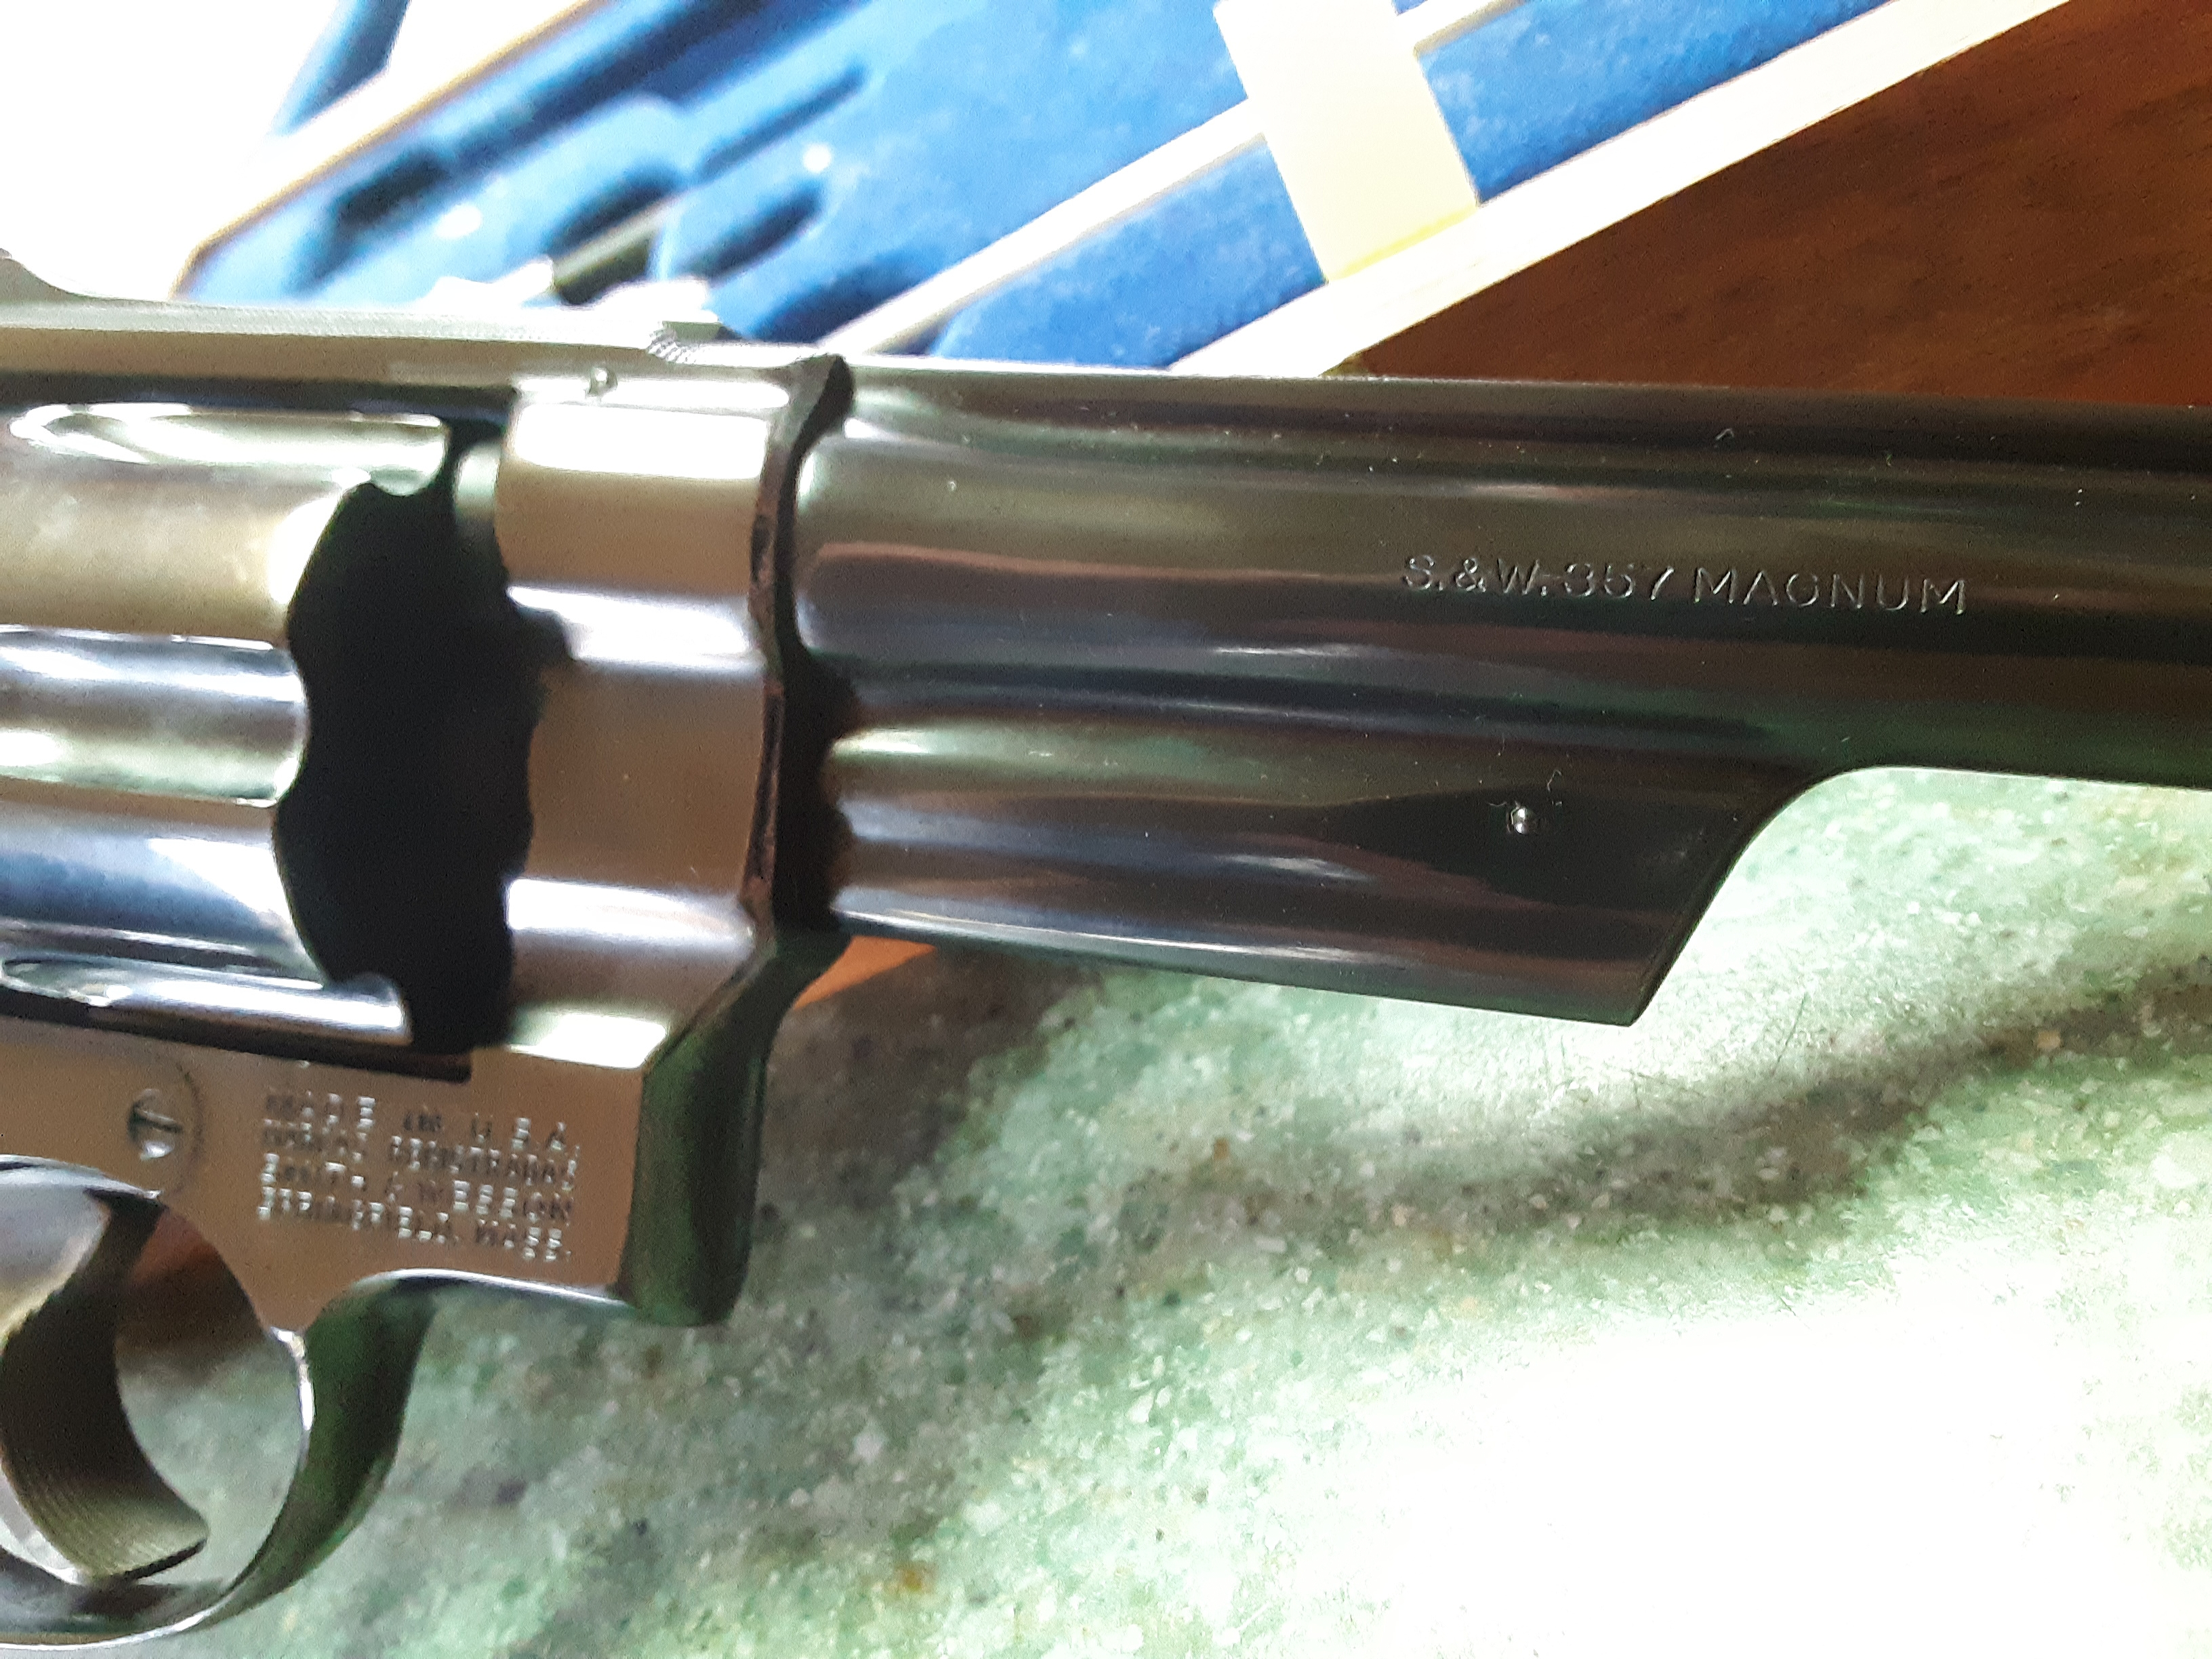 Smith & Wesson 27-2-20191026_200419.jpg